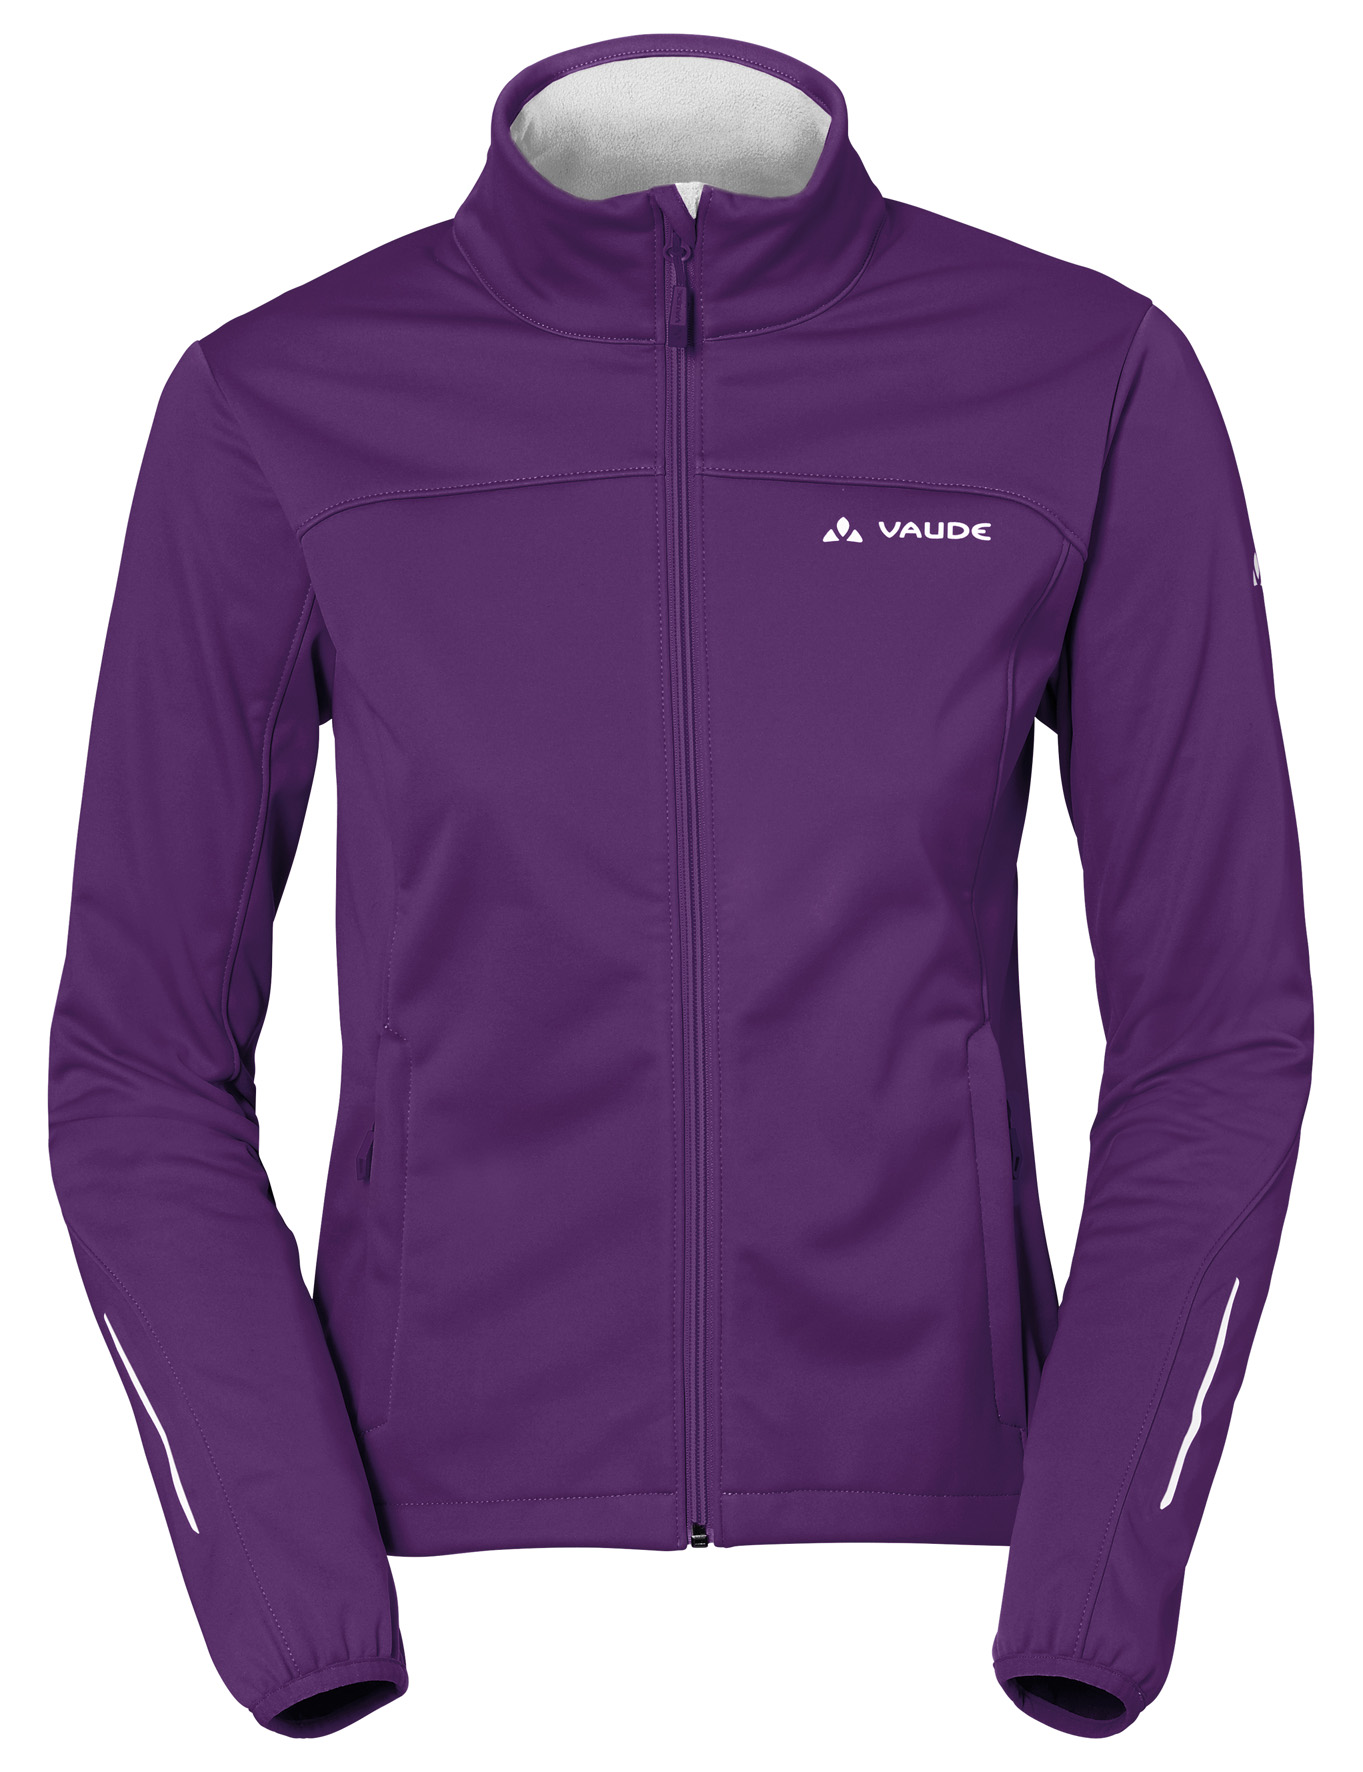 VAUDE Women´s Wintry Jacket III elderberry Größe 38 - schneider-sports